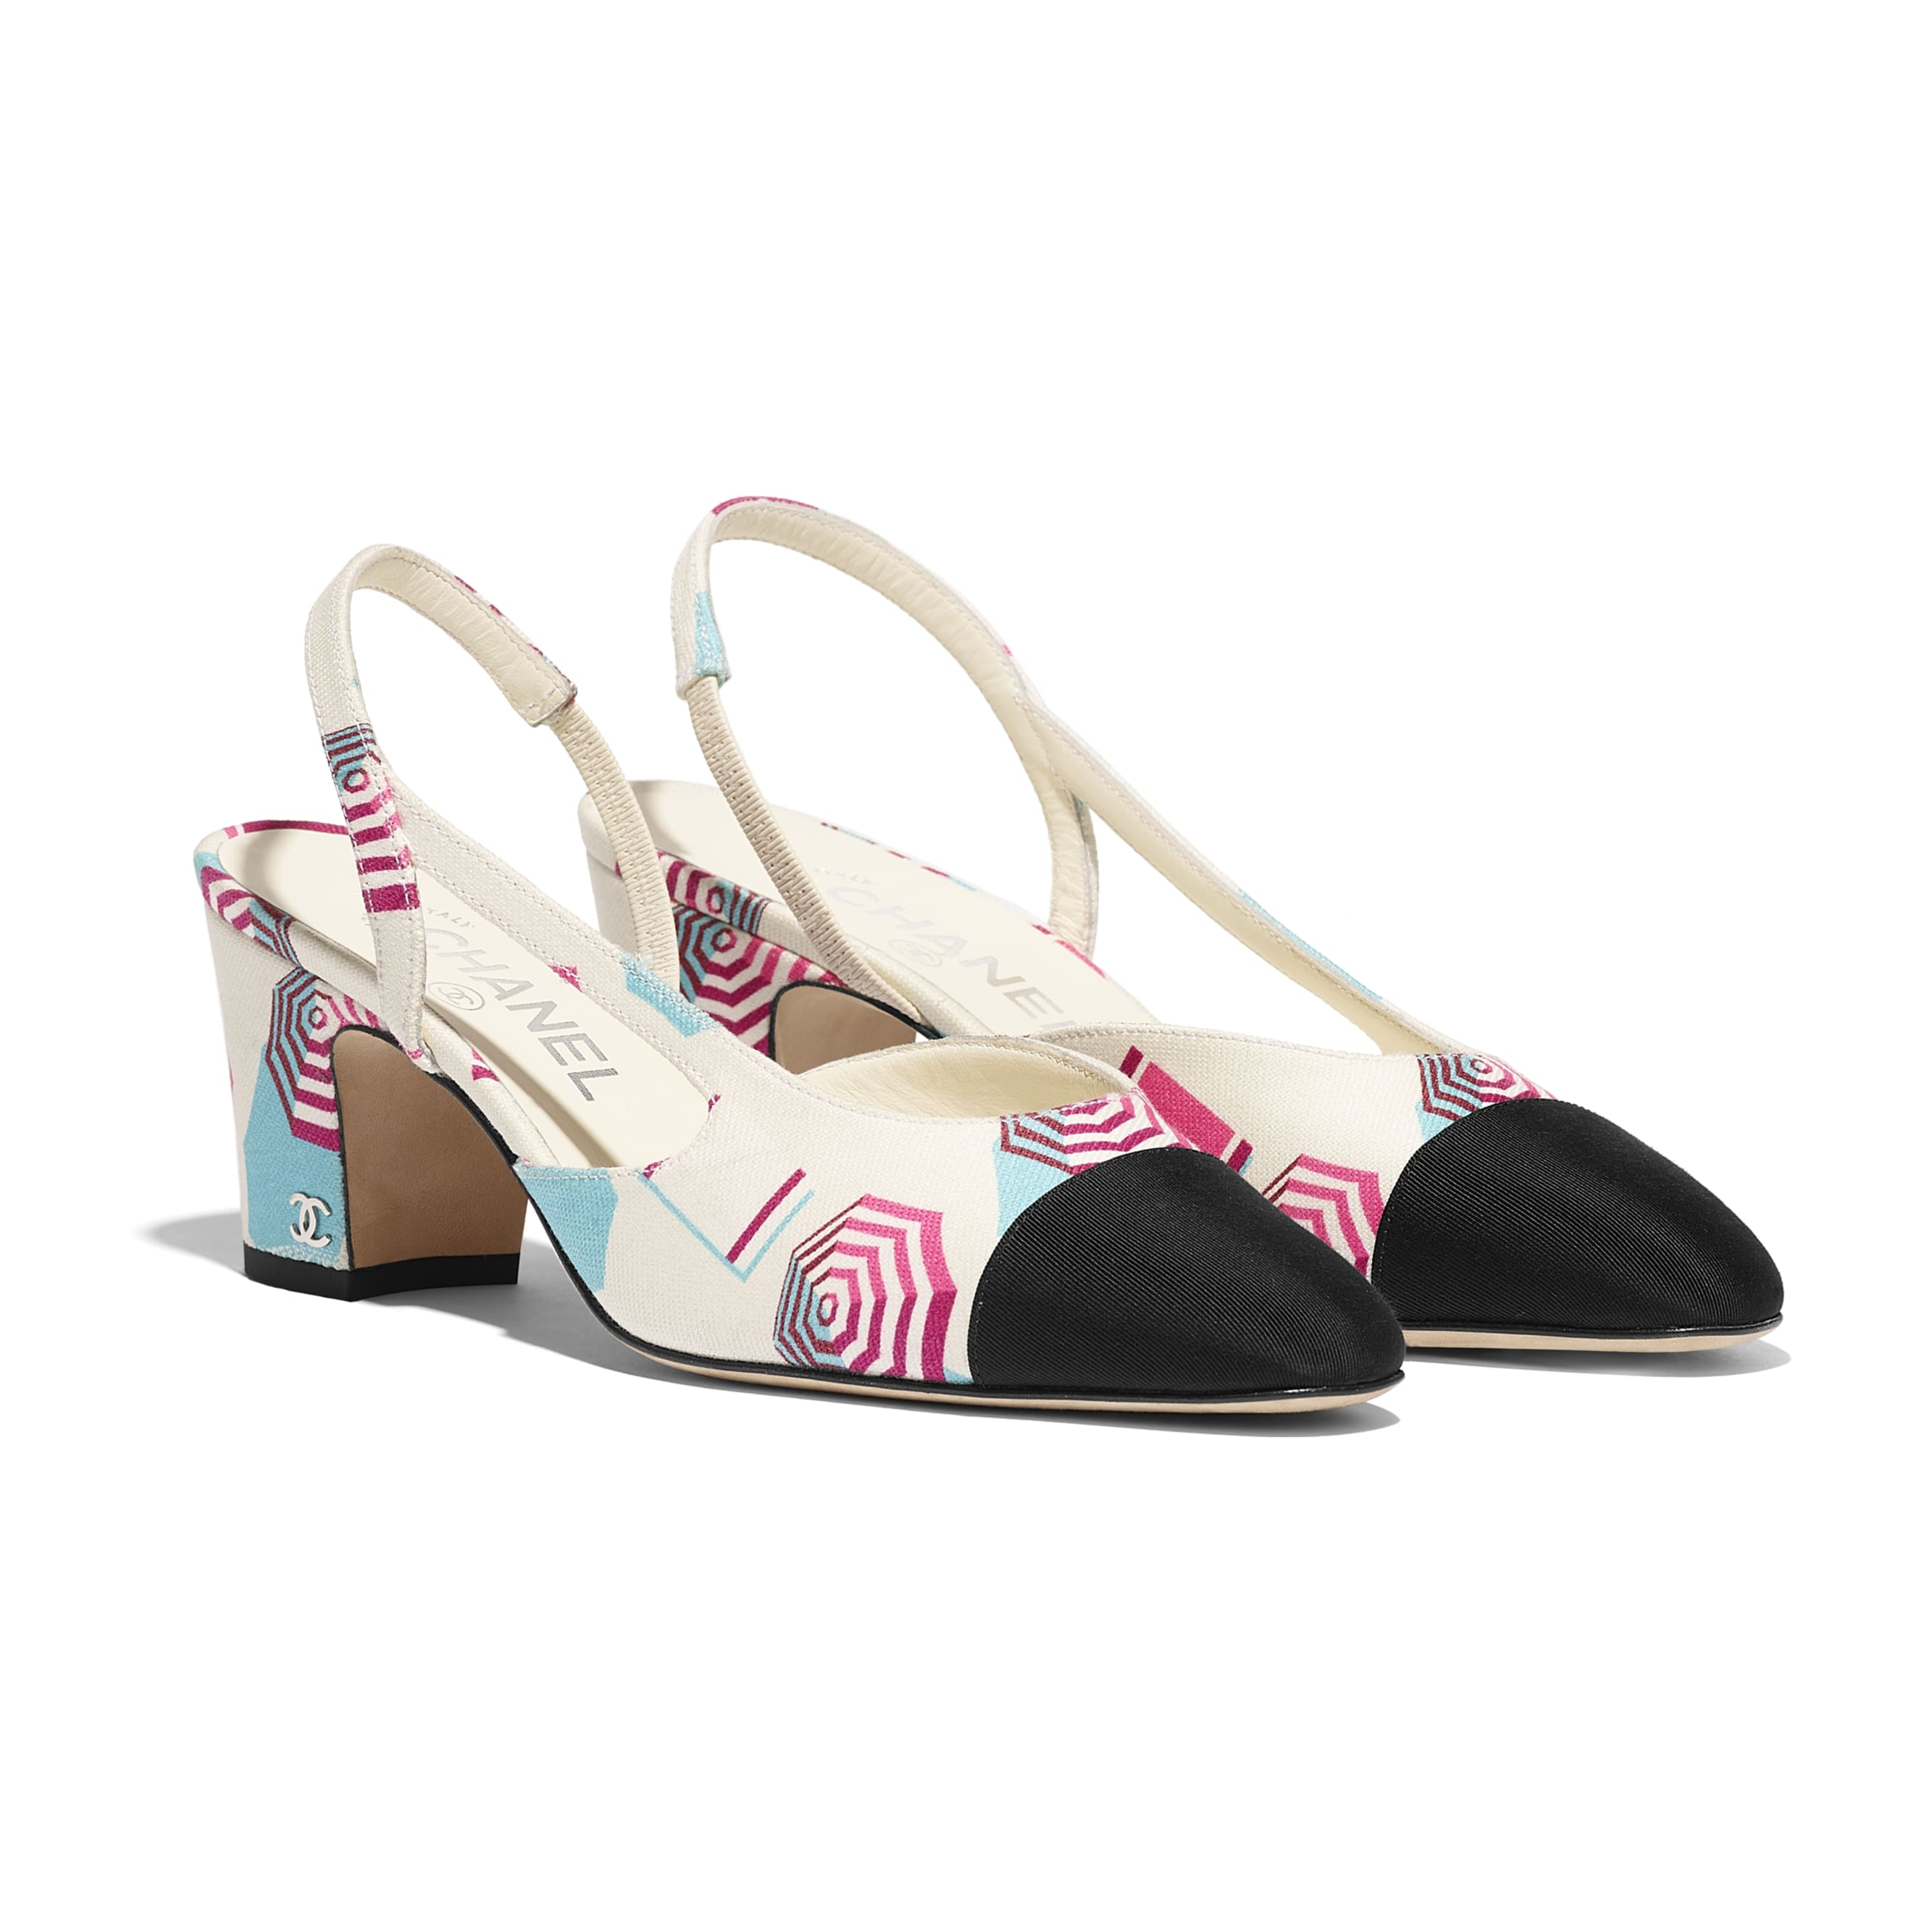 Slingbacks - Ecru, Blue, Pink & Black - Fabric - Alternative view - see standard sized version